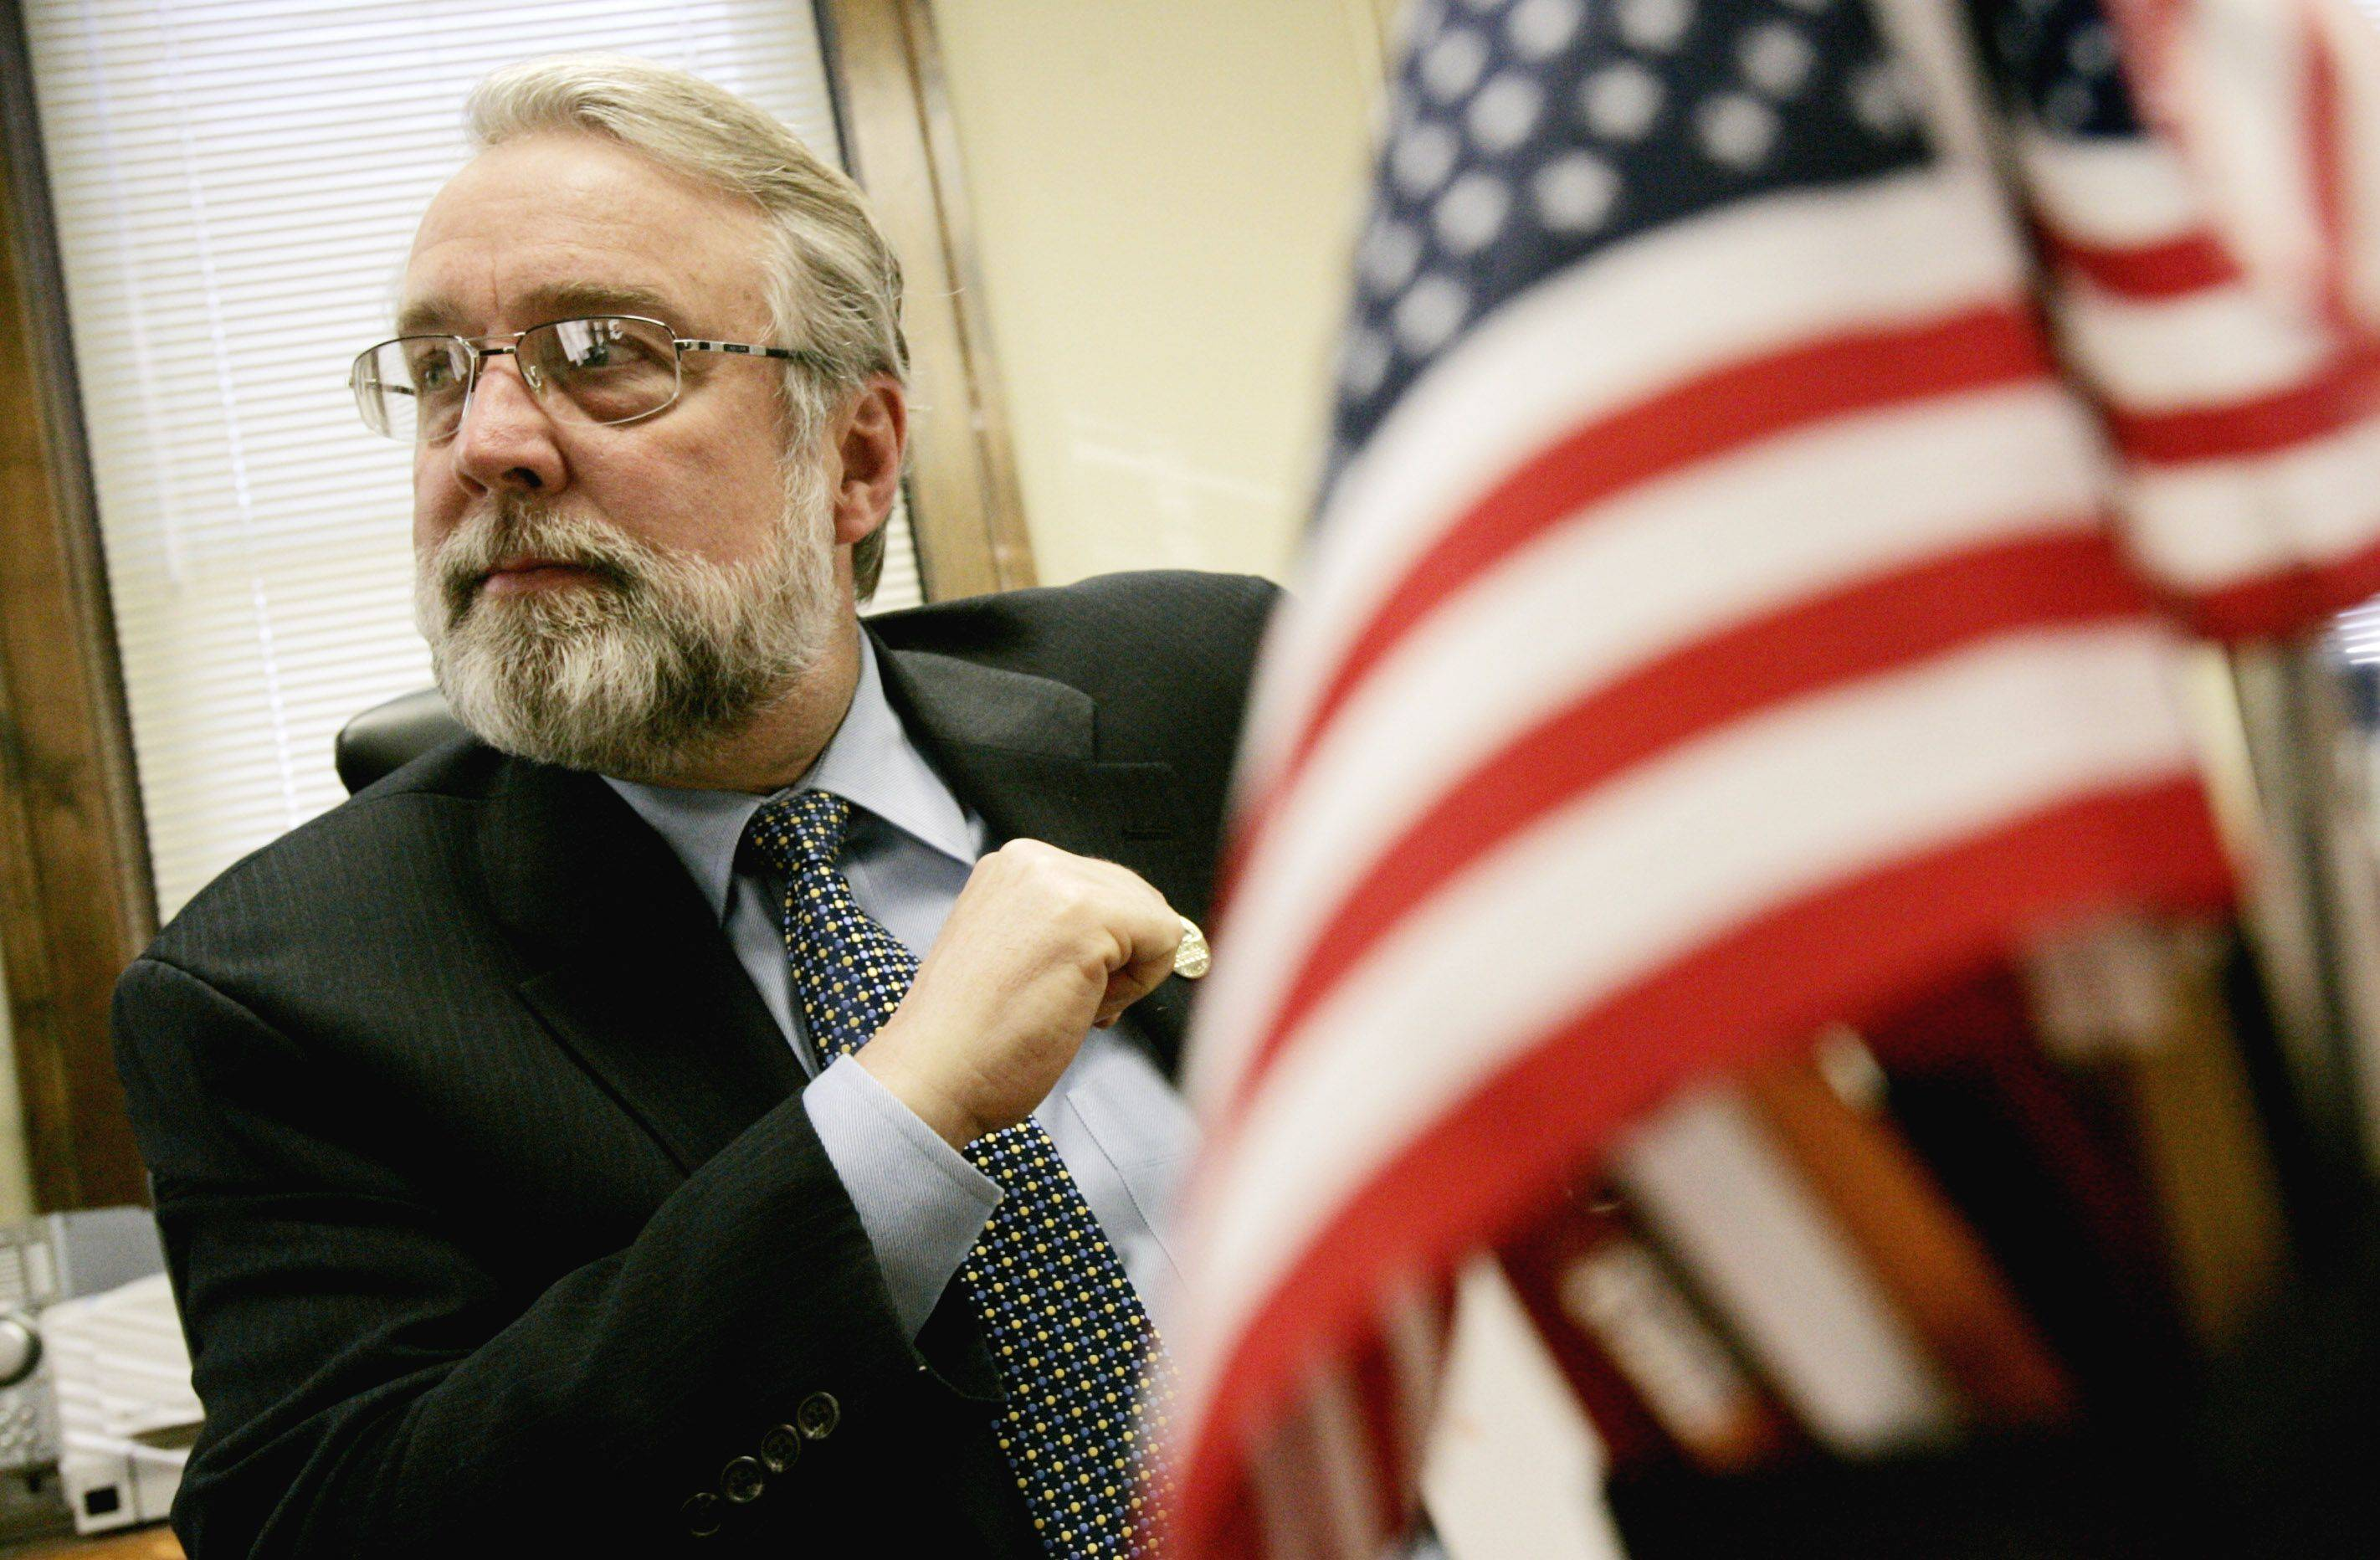 Aurora Mayor Tom Weisner says he was just 11 when John Kennedy gave his inauguration speech, but it still influenced him to try to change the world.